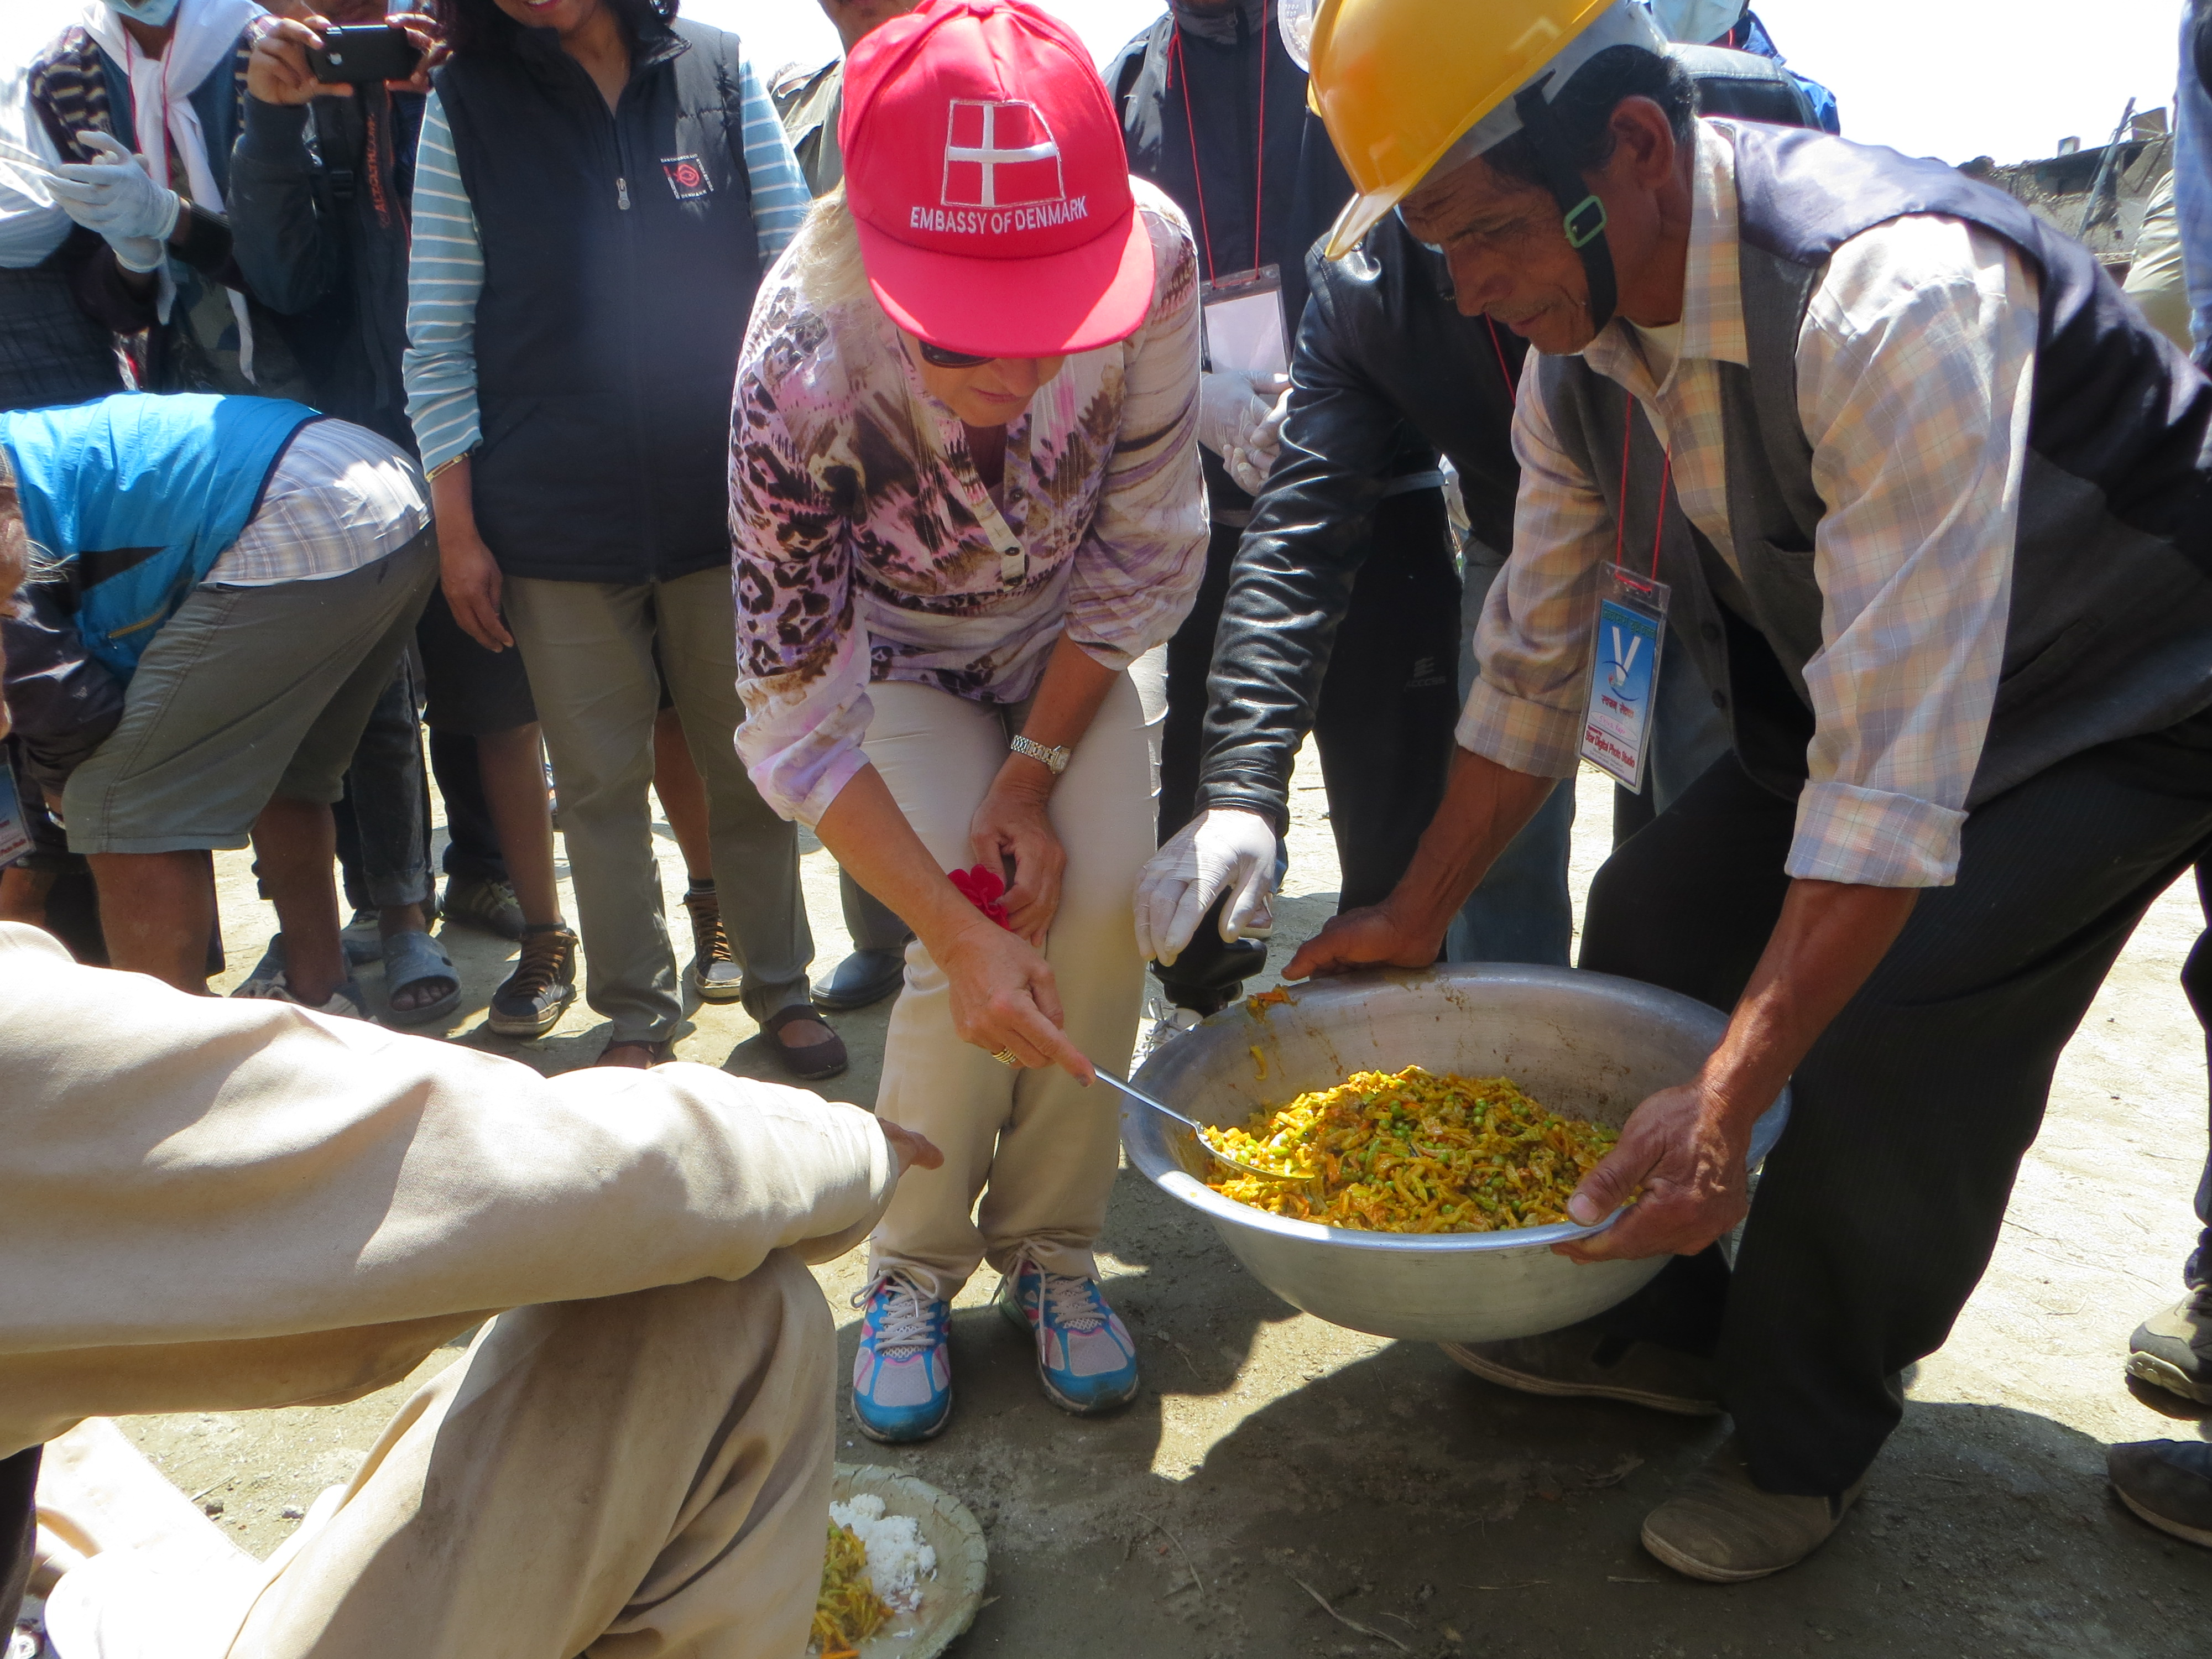 Danish ambassador to Nepal Mrs. H.E. Kirsten Geelan serving food in Nikosera, Bhaktapur under meal feeding program for Earthquake victim.